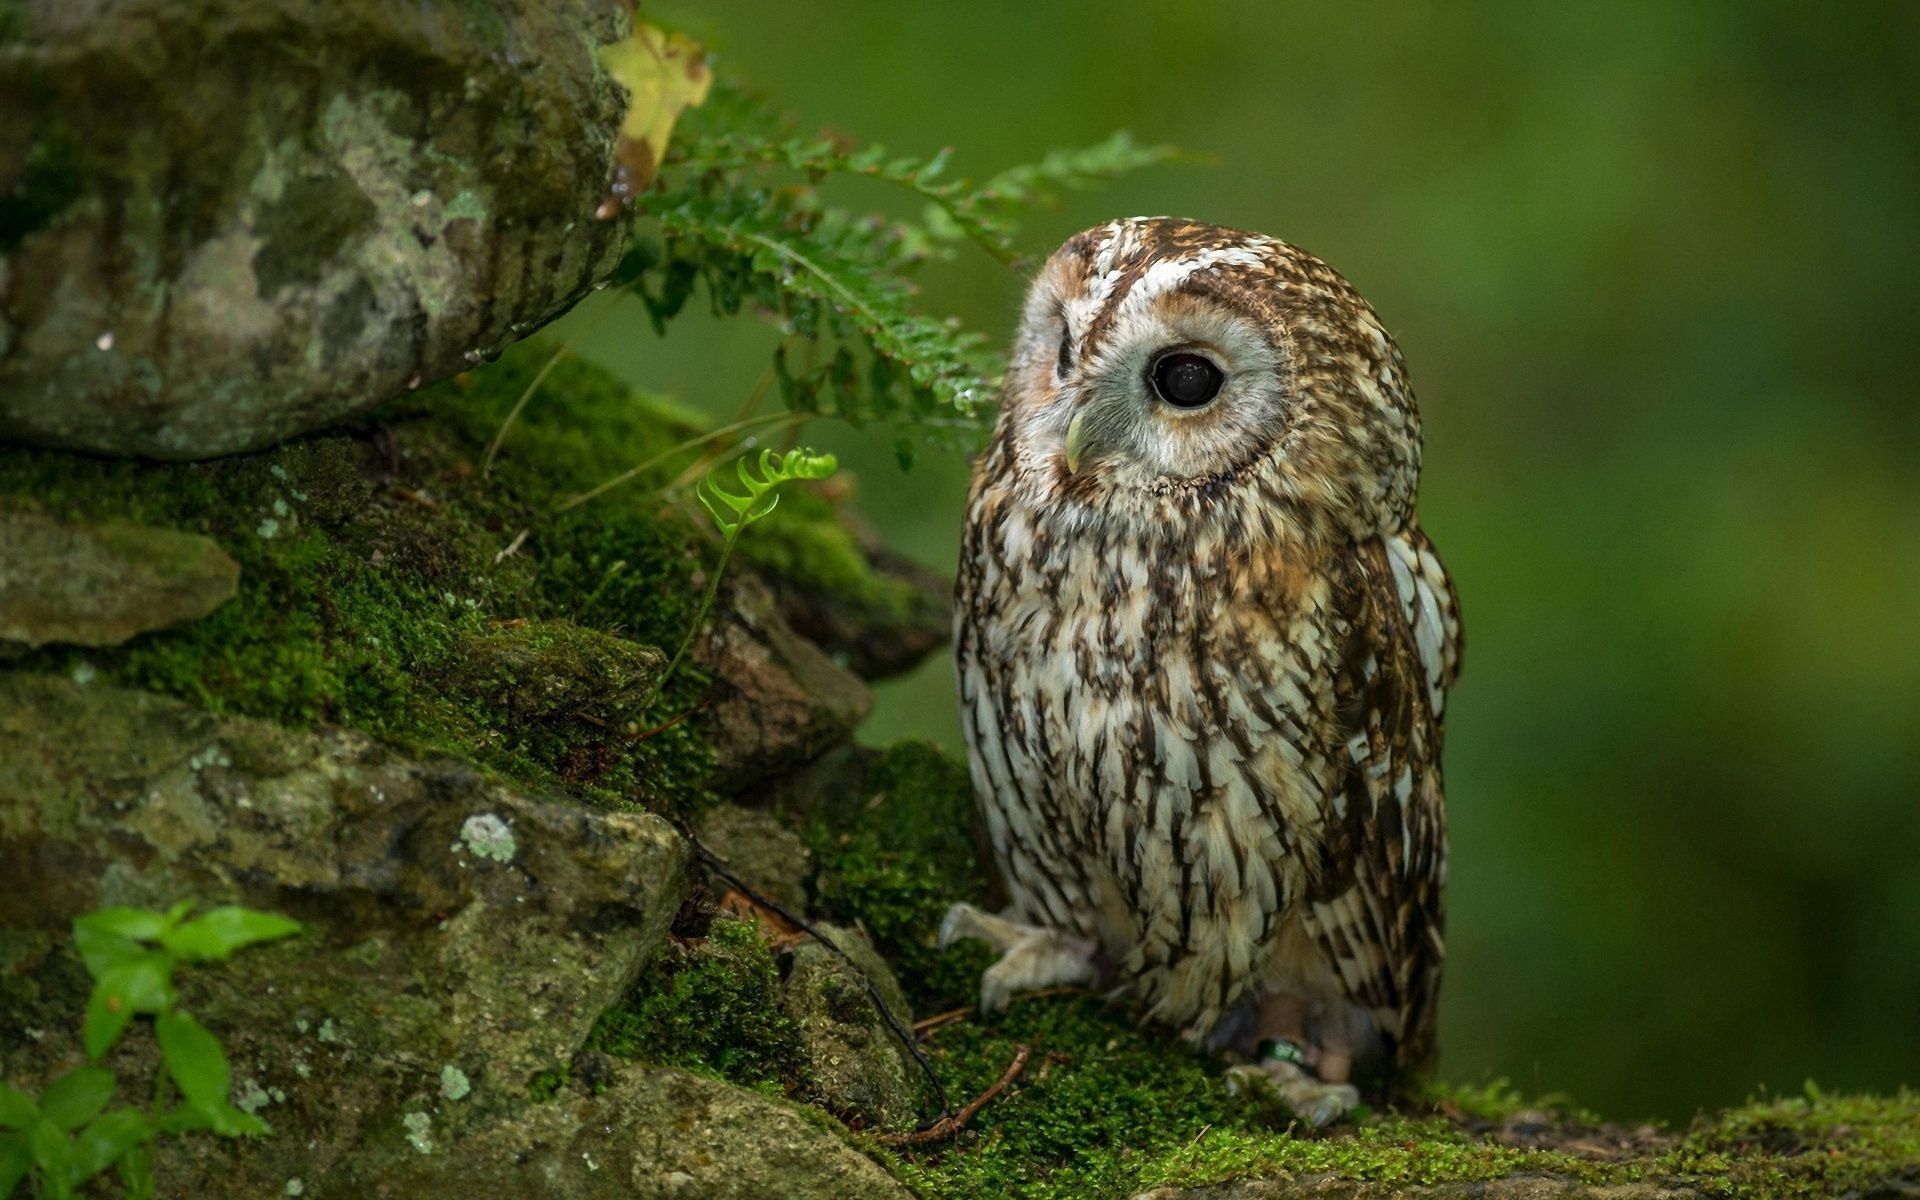 103924 download wallpaper Animals, Owl, Bird, Predator, Grass, Sit, Hunting, Hunt, Expectation, Waiting, Moss, Stones screensavers and pictures for free